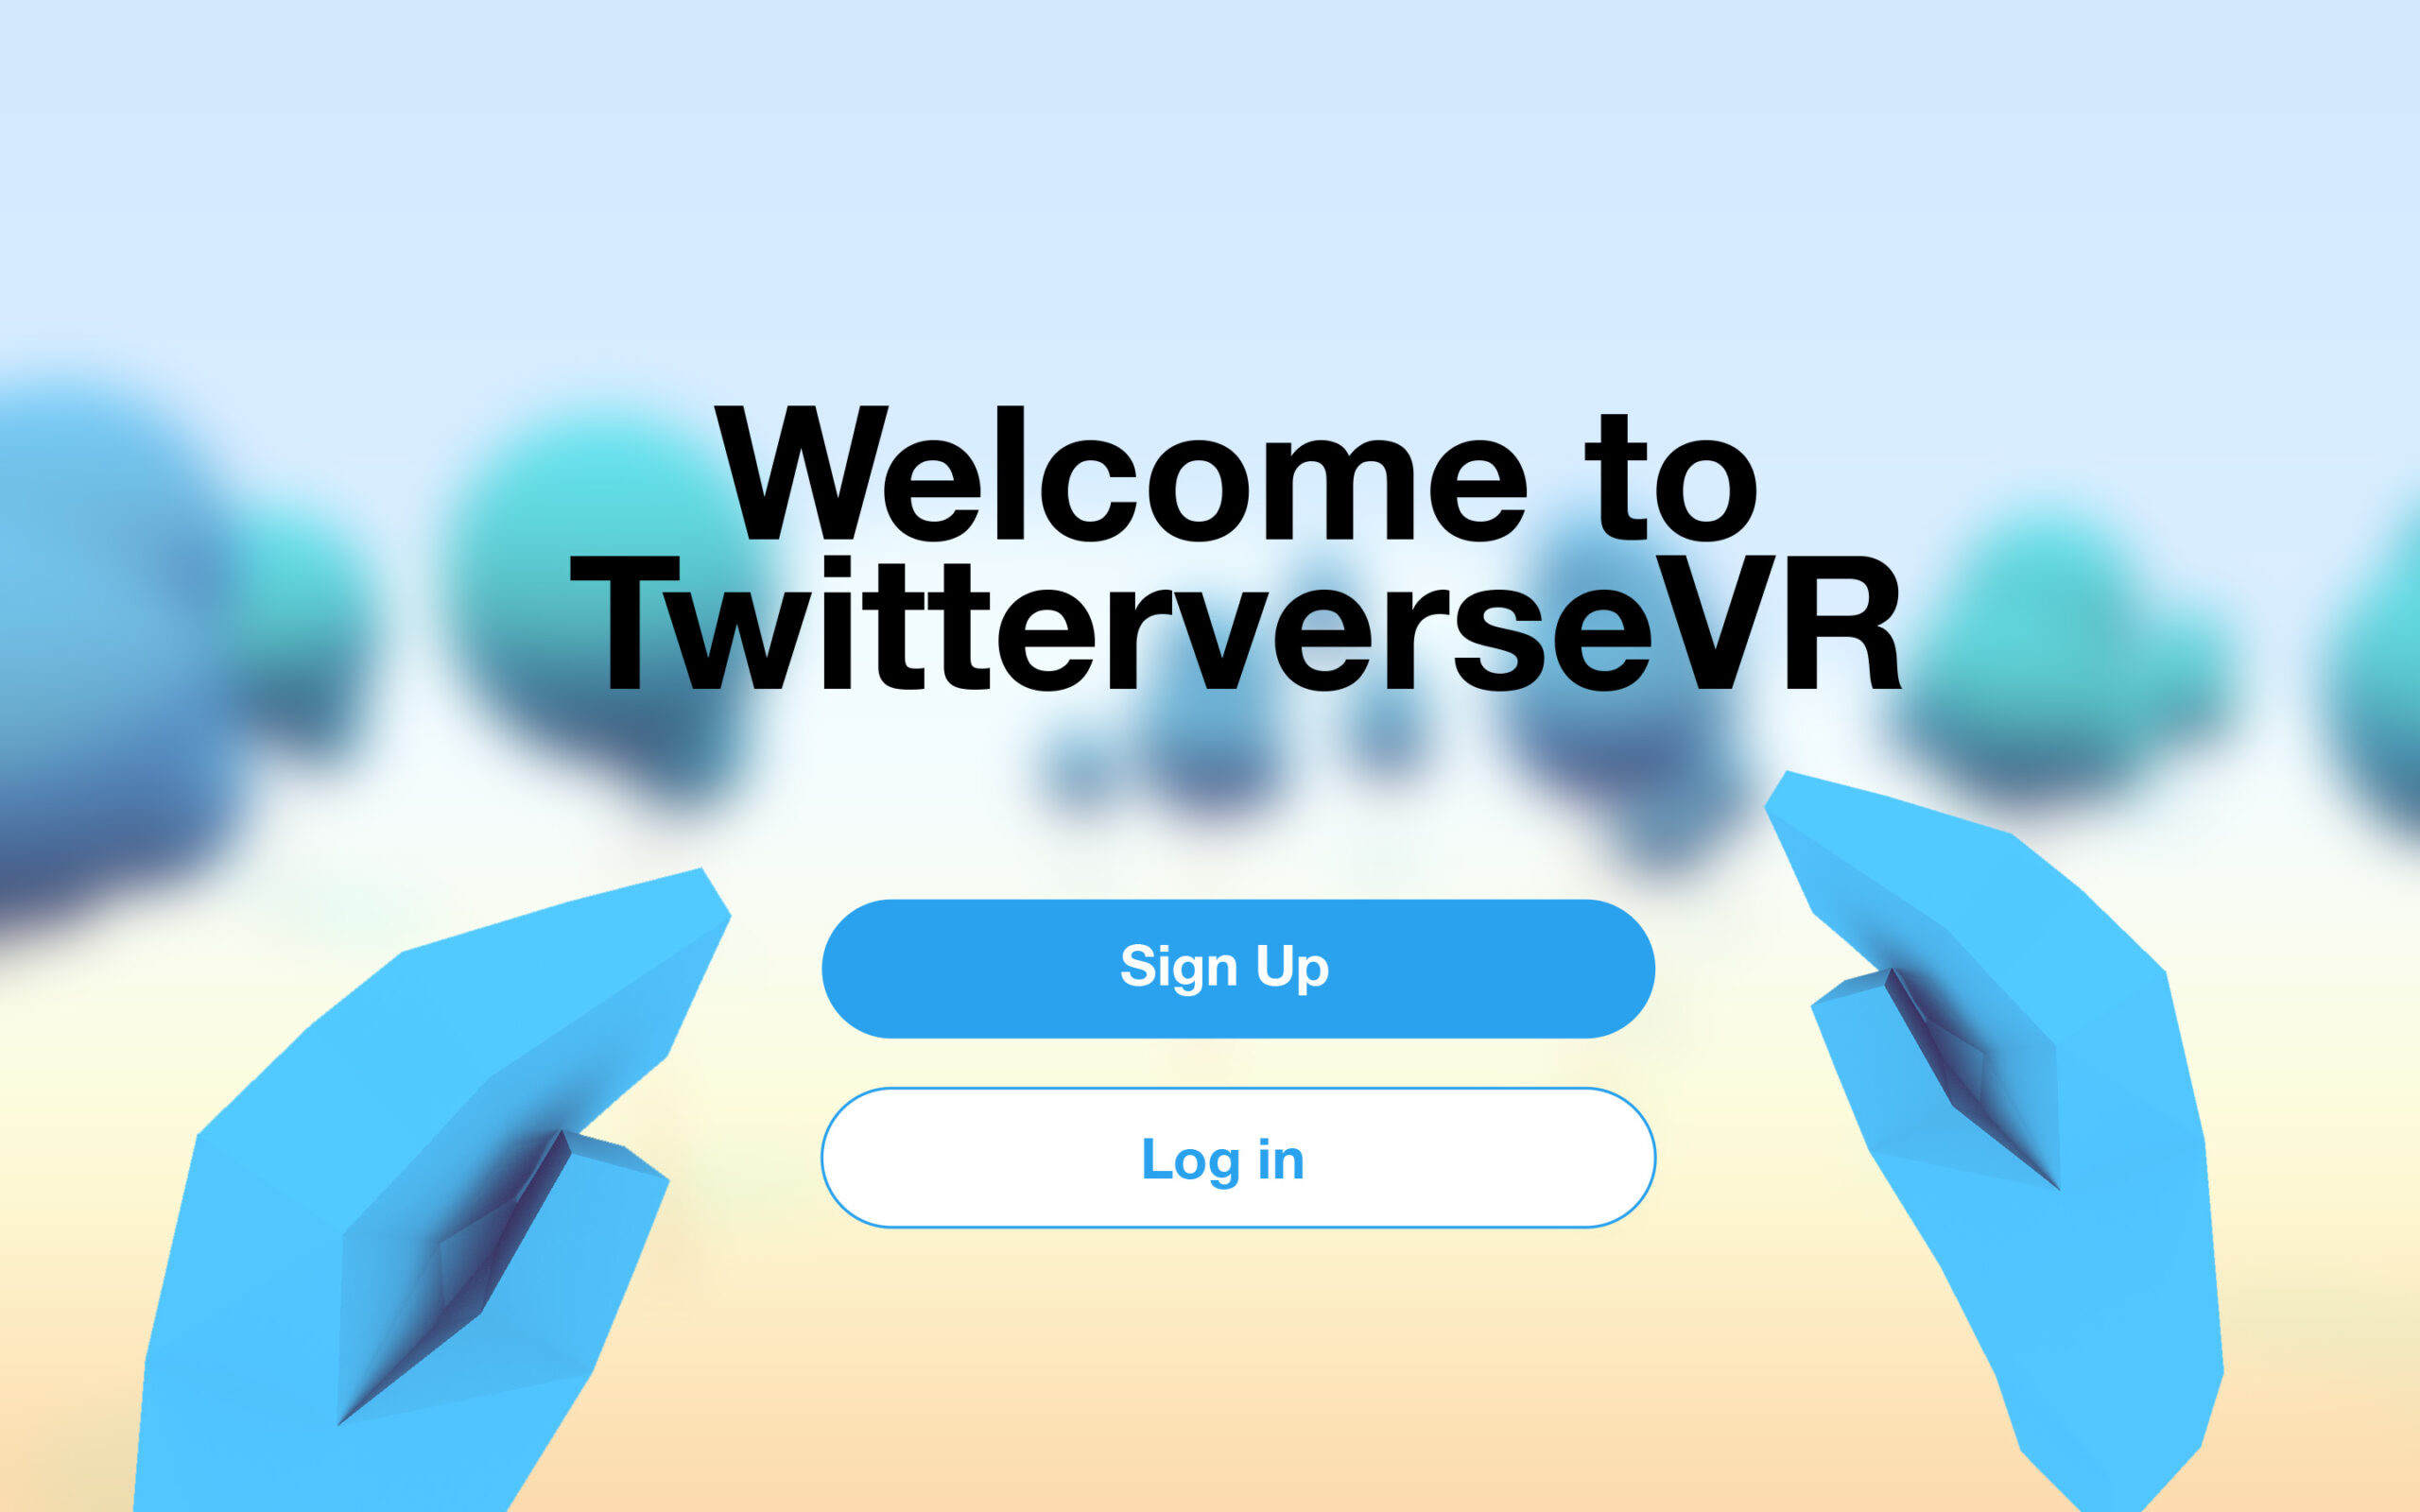 TwitterverseVR Home screen.